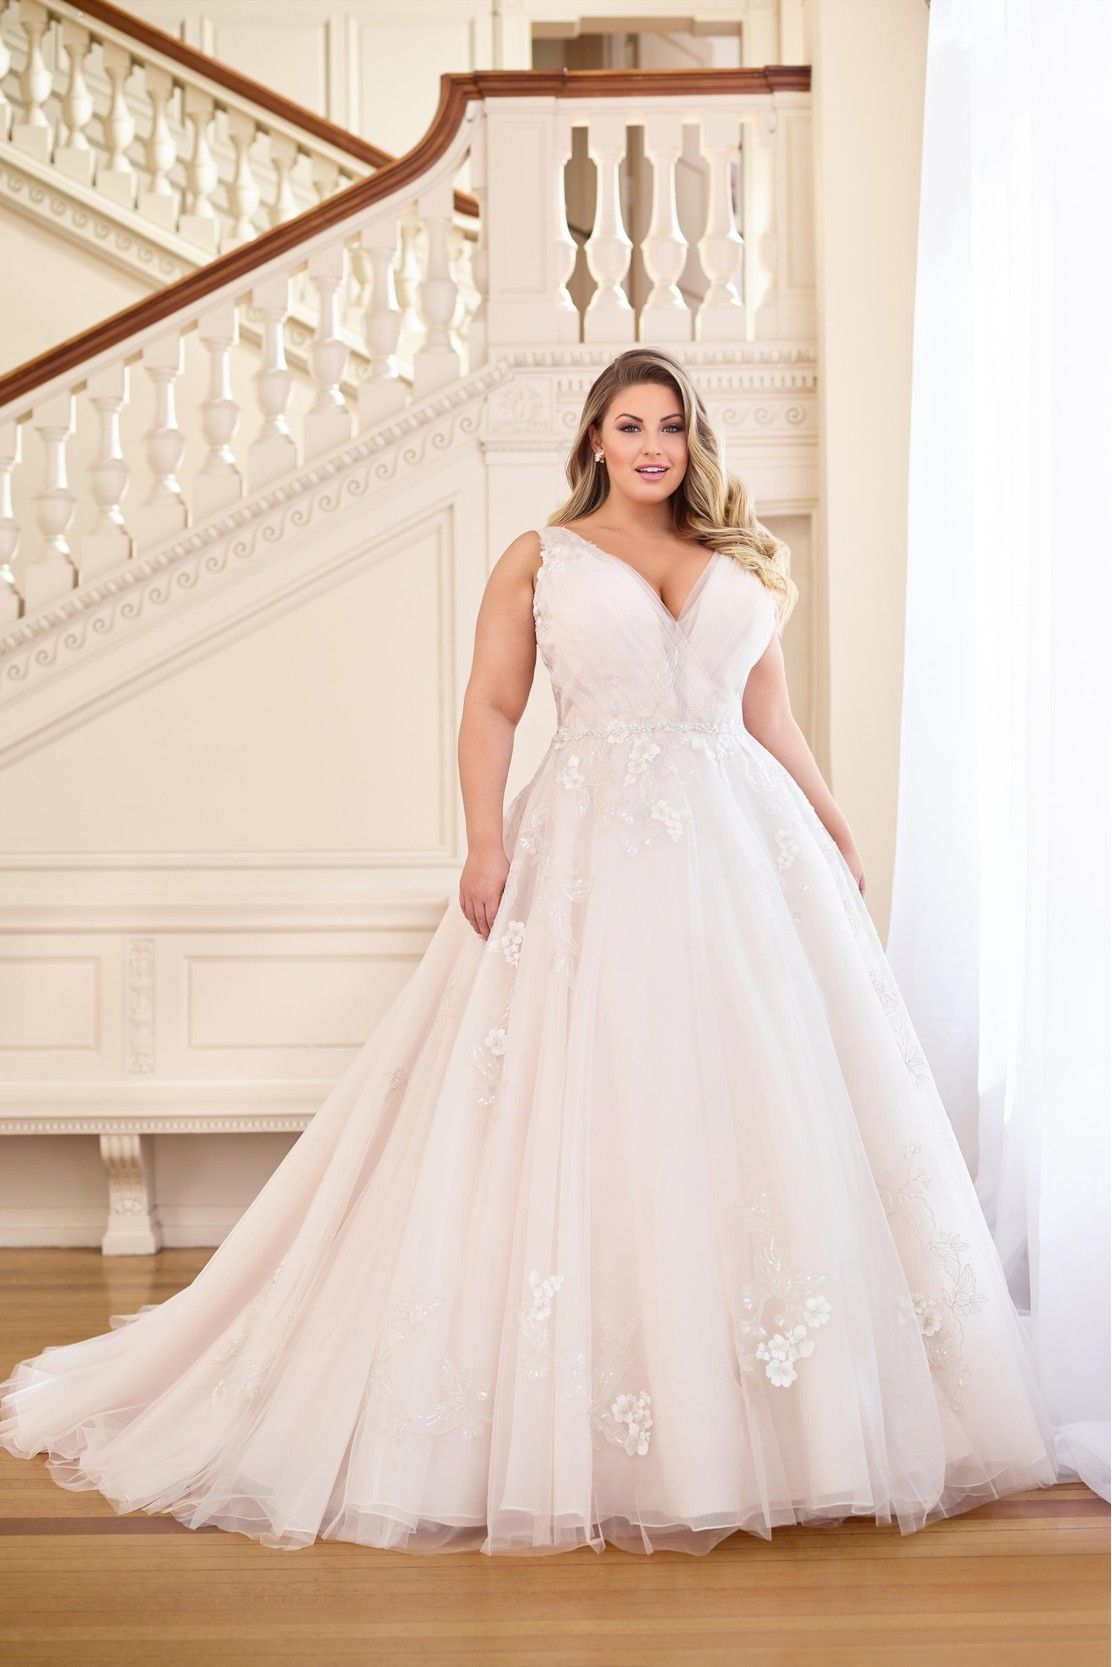 6 Essential Rules For PlusSize Wedding Dress Shopping